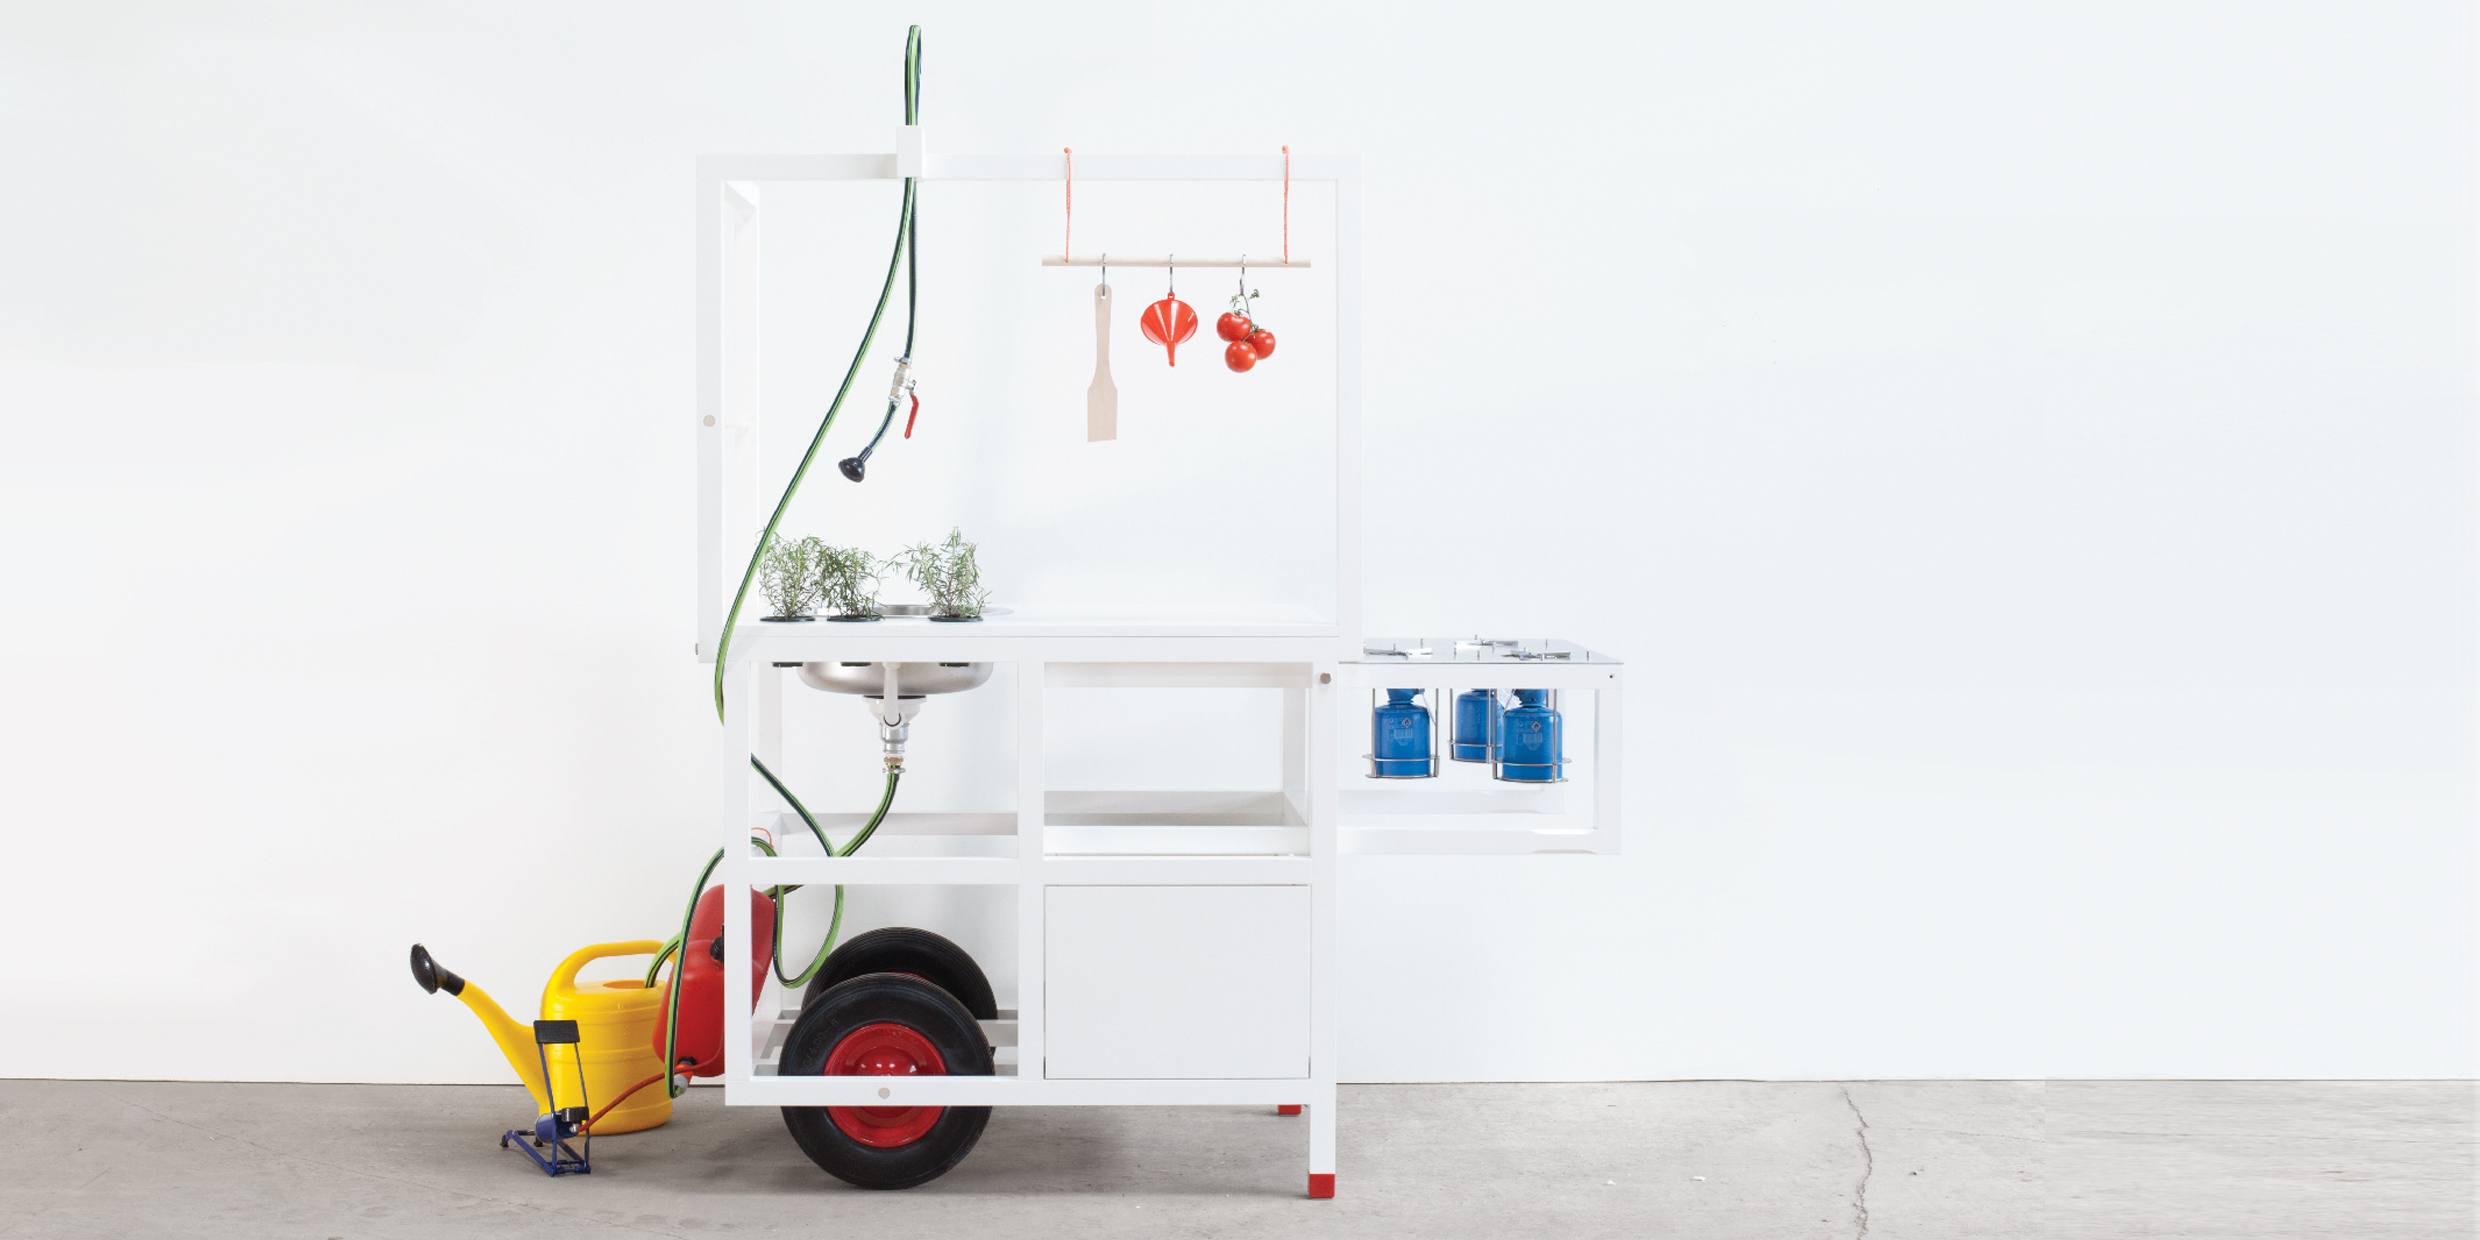 The 'Mobile Hospitality'-Kitchen to be Showcased at the ICFF New York, 5/17